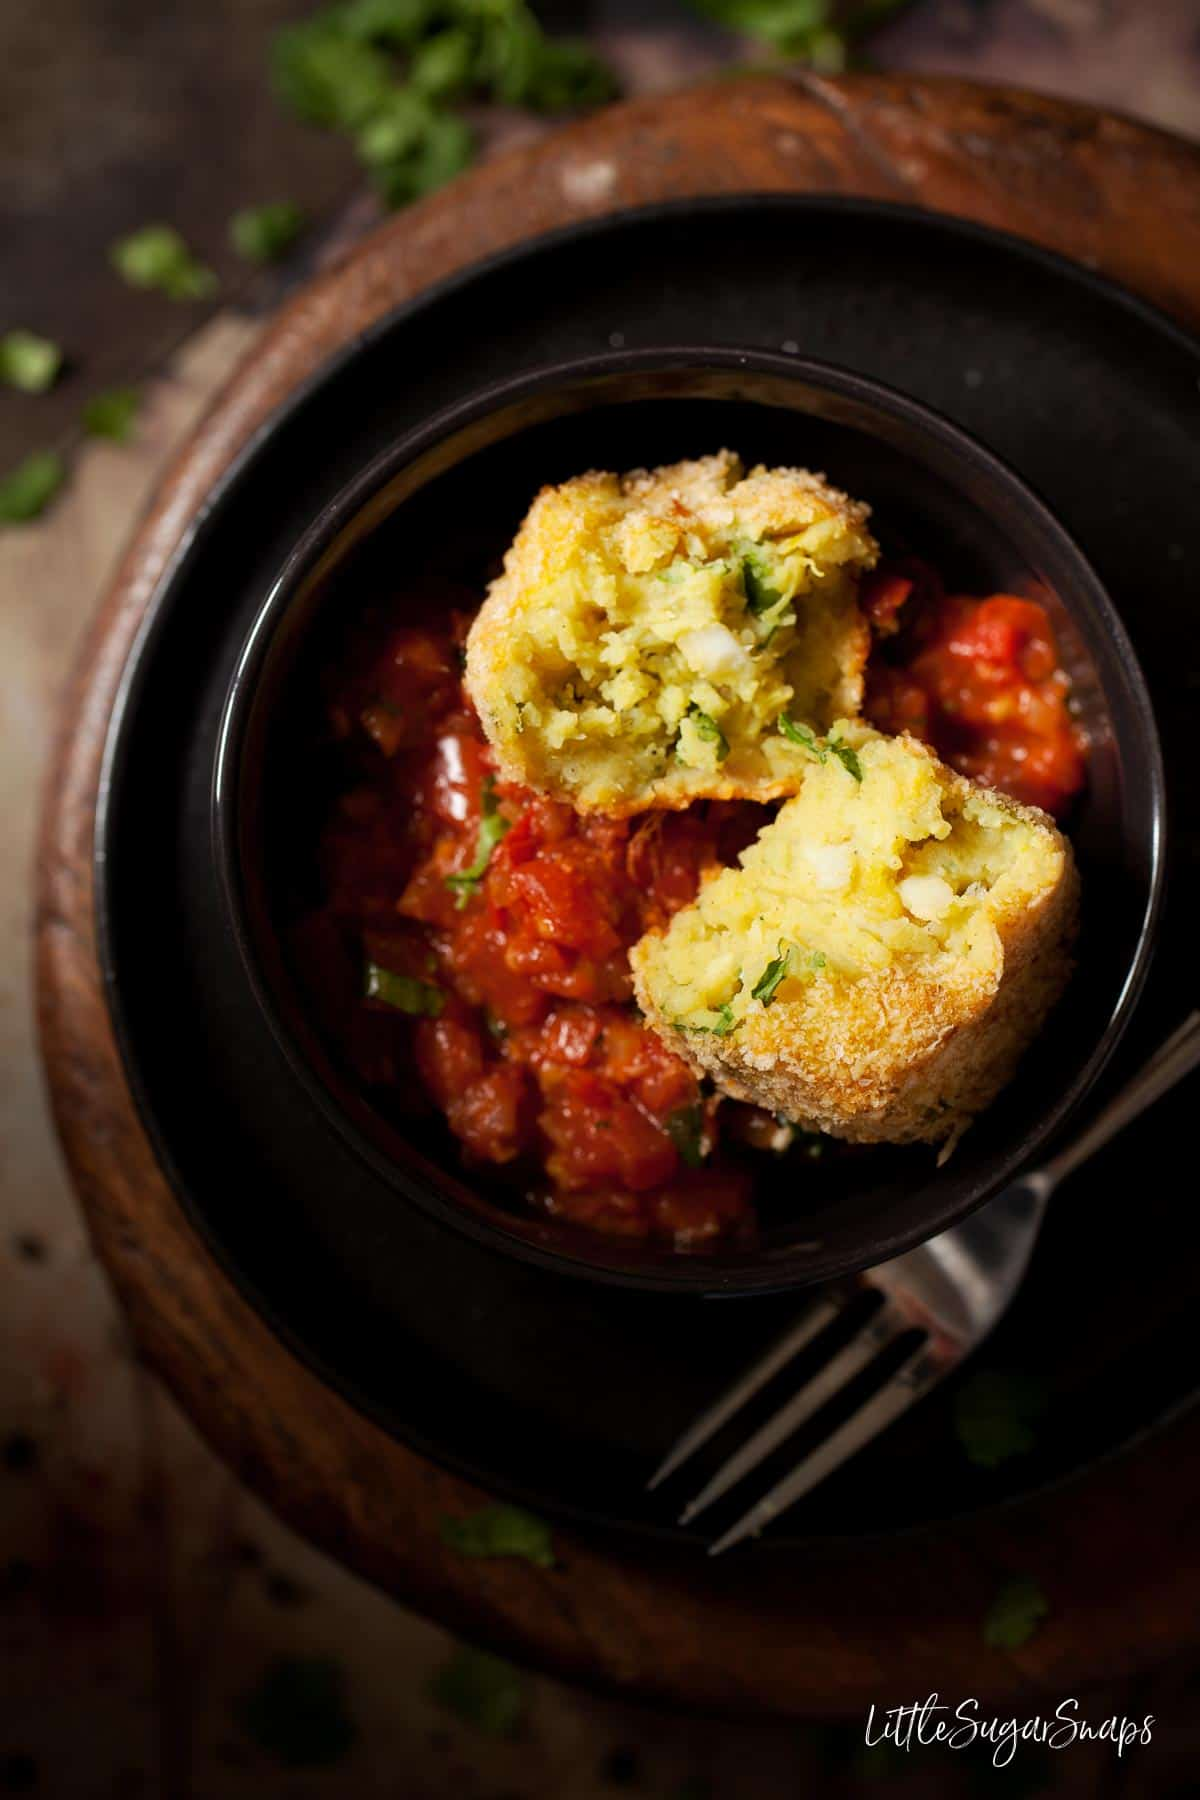 A cut open smoked haddock fish cake with spiced tomato sauce.